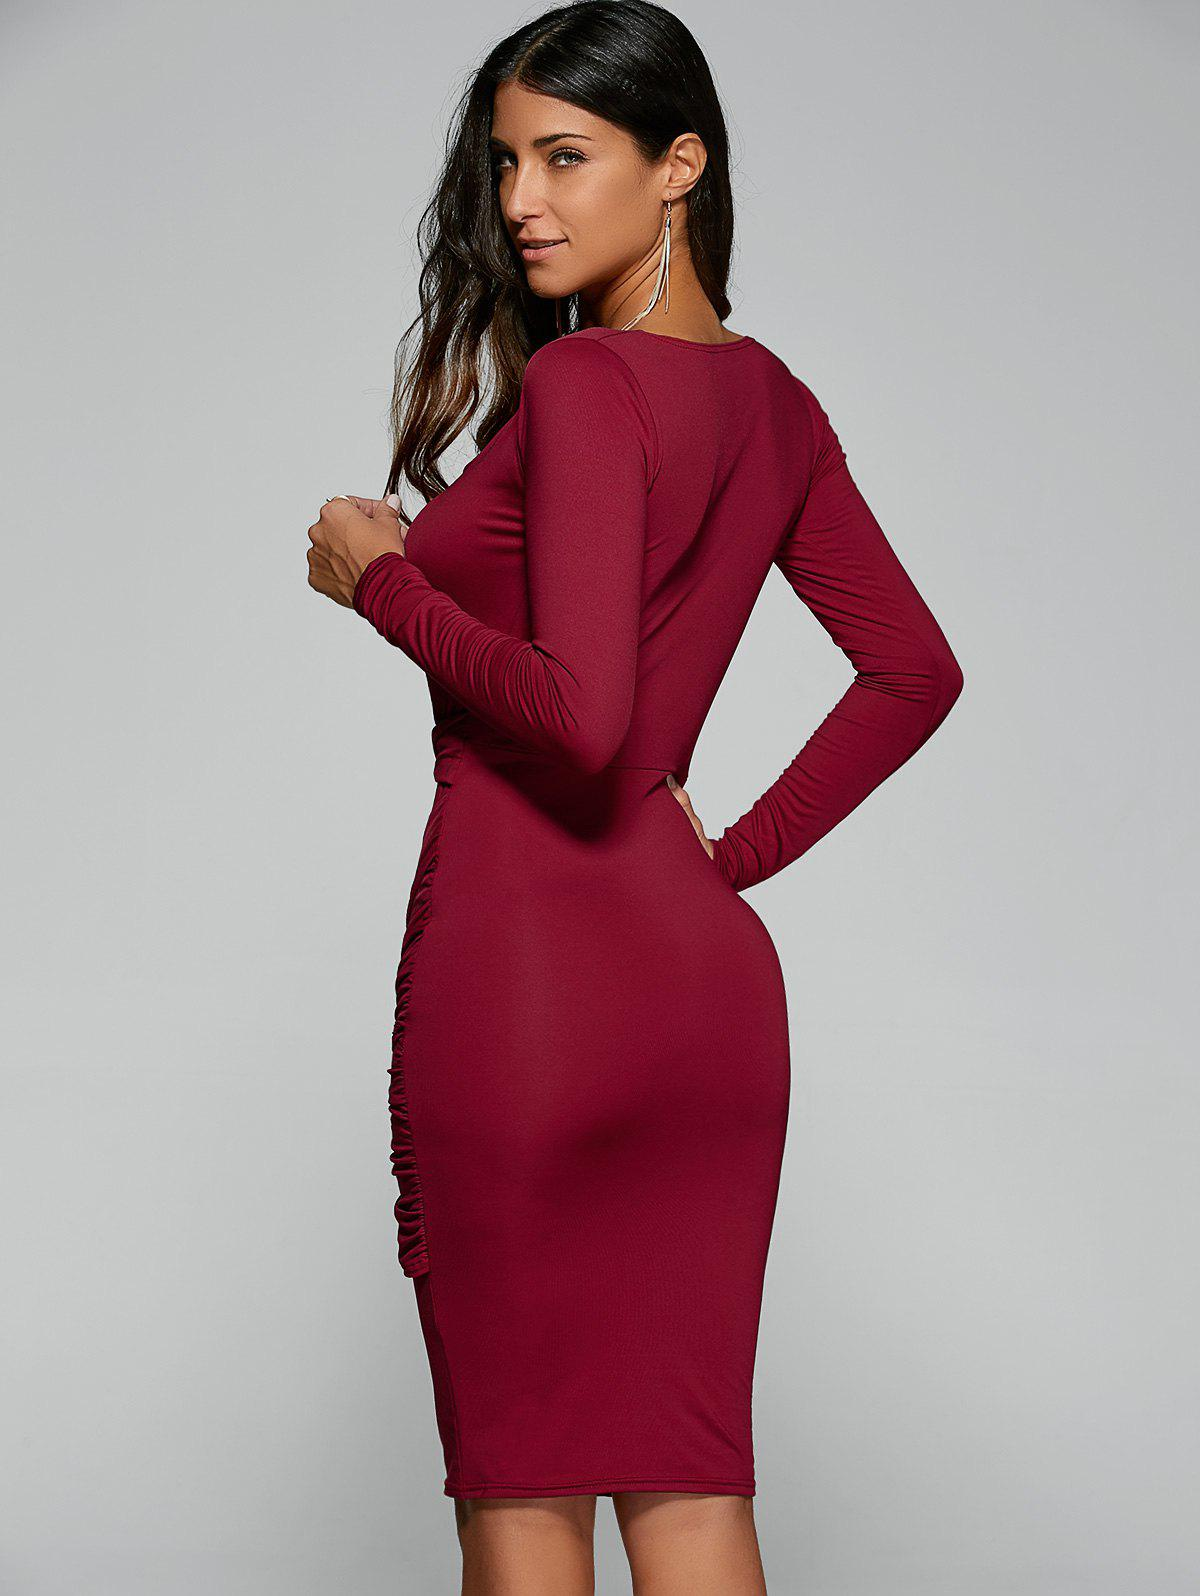 Twist Front Long Sleeve Bodycon Formal Midi Dress - RED S